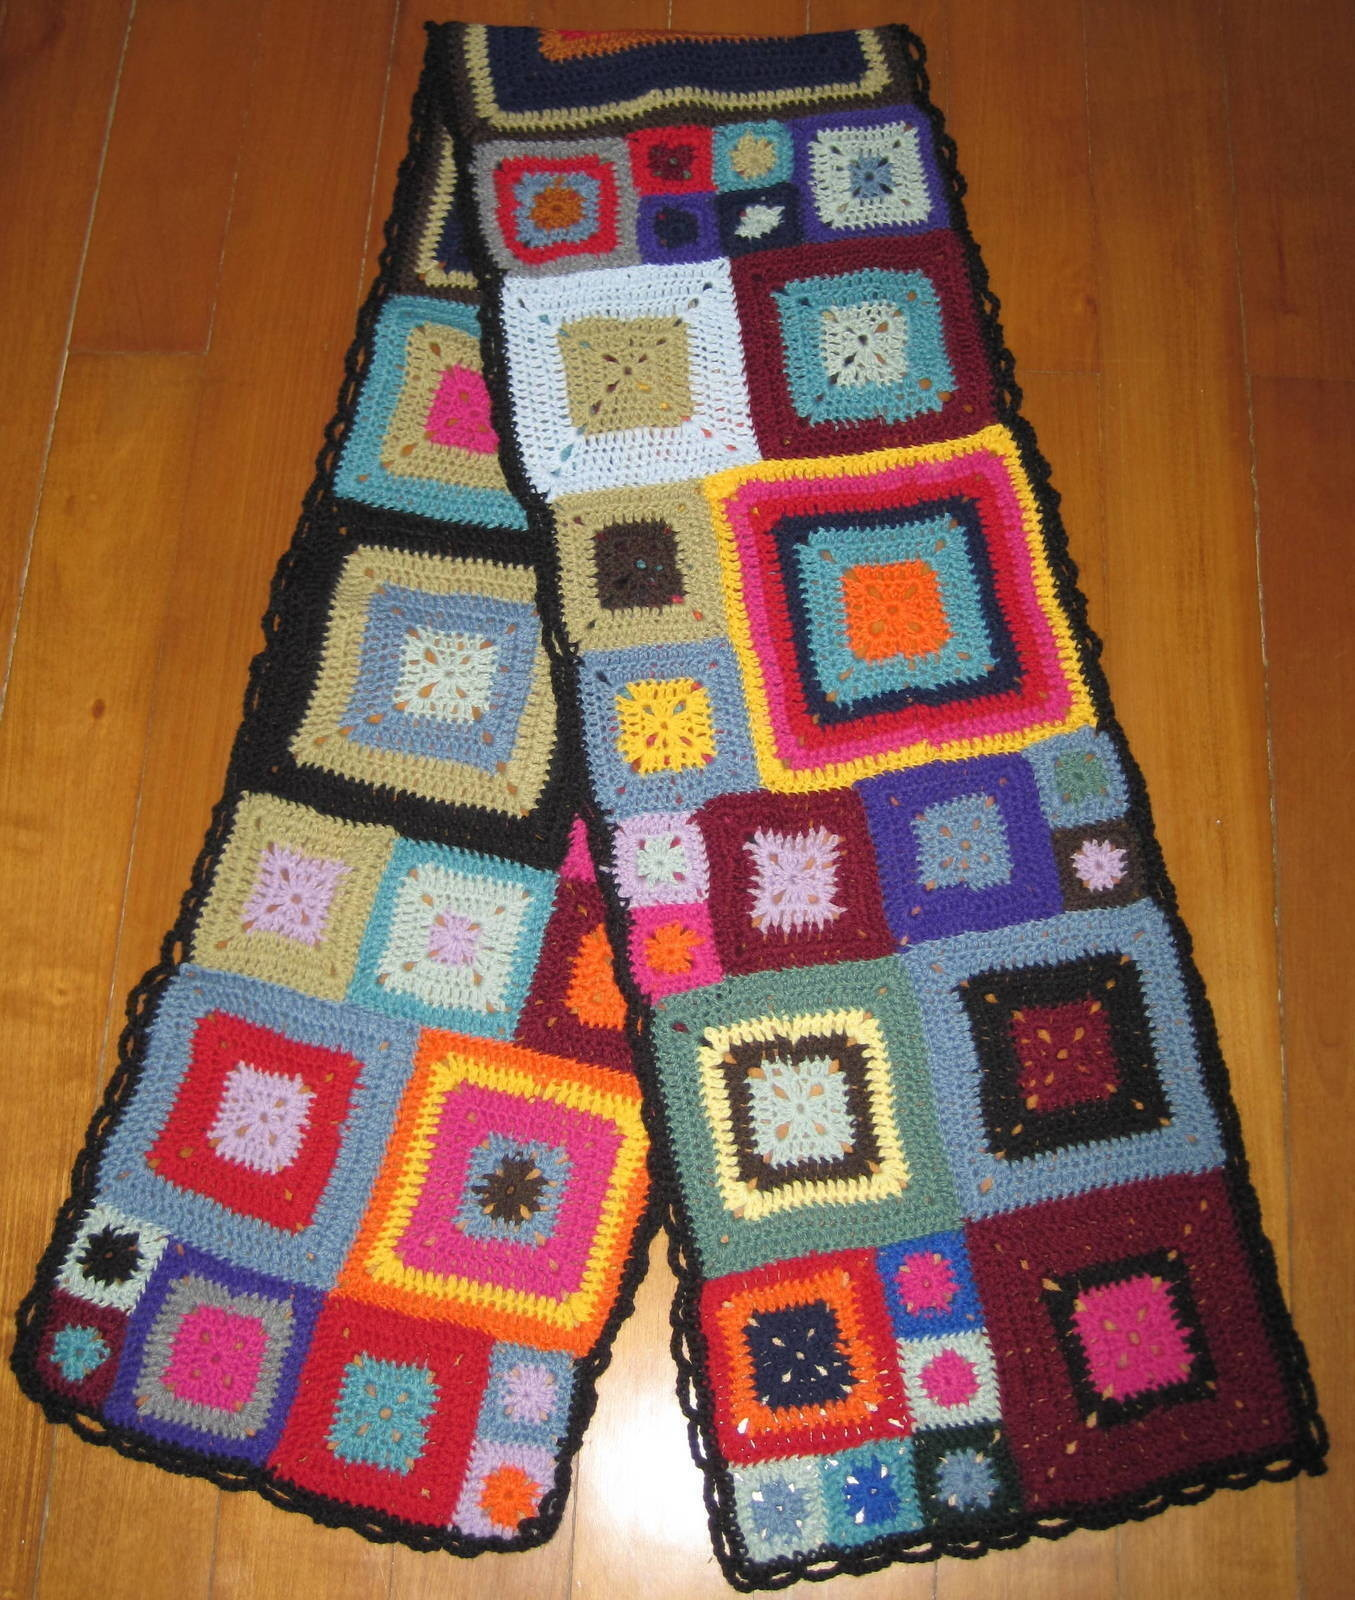 crochet granny square diagram vw passat radio wiring scarf aka what to do with those babette blanket a for how assemble using any crocheted pattern free